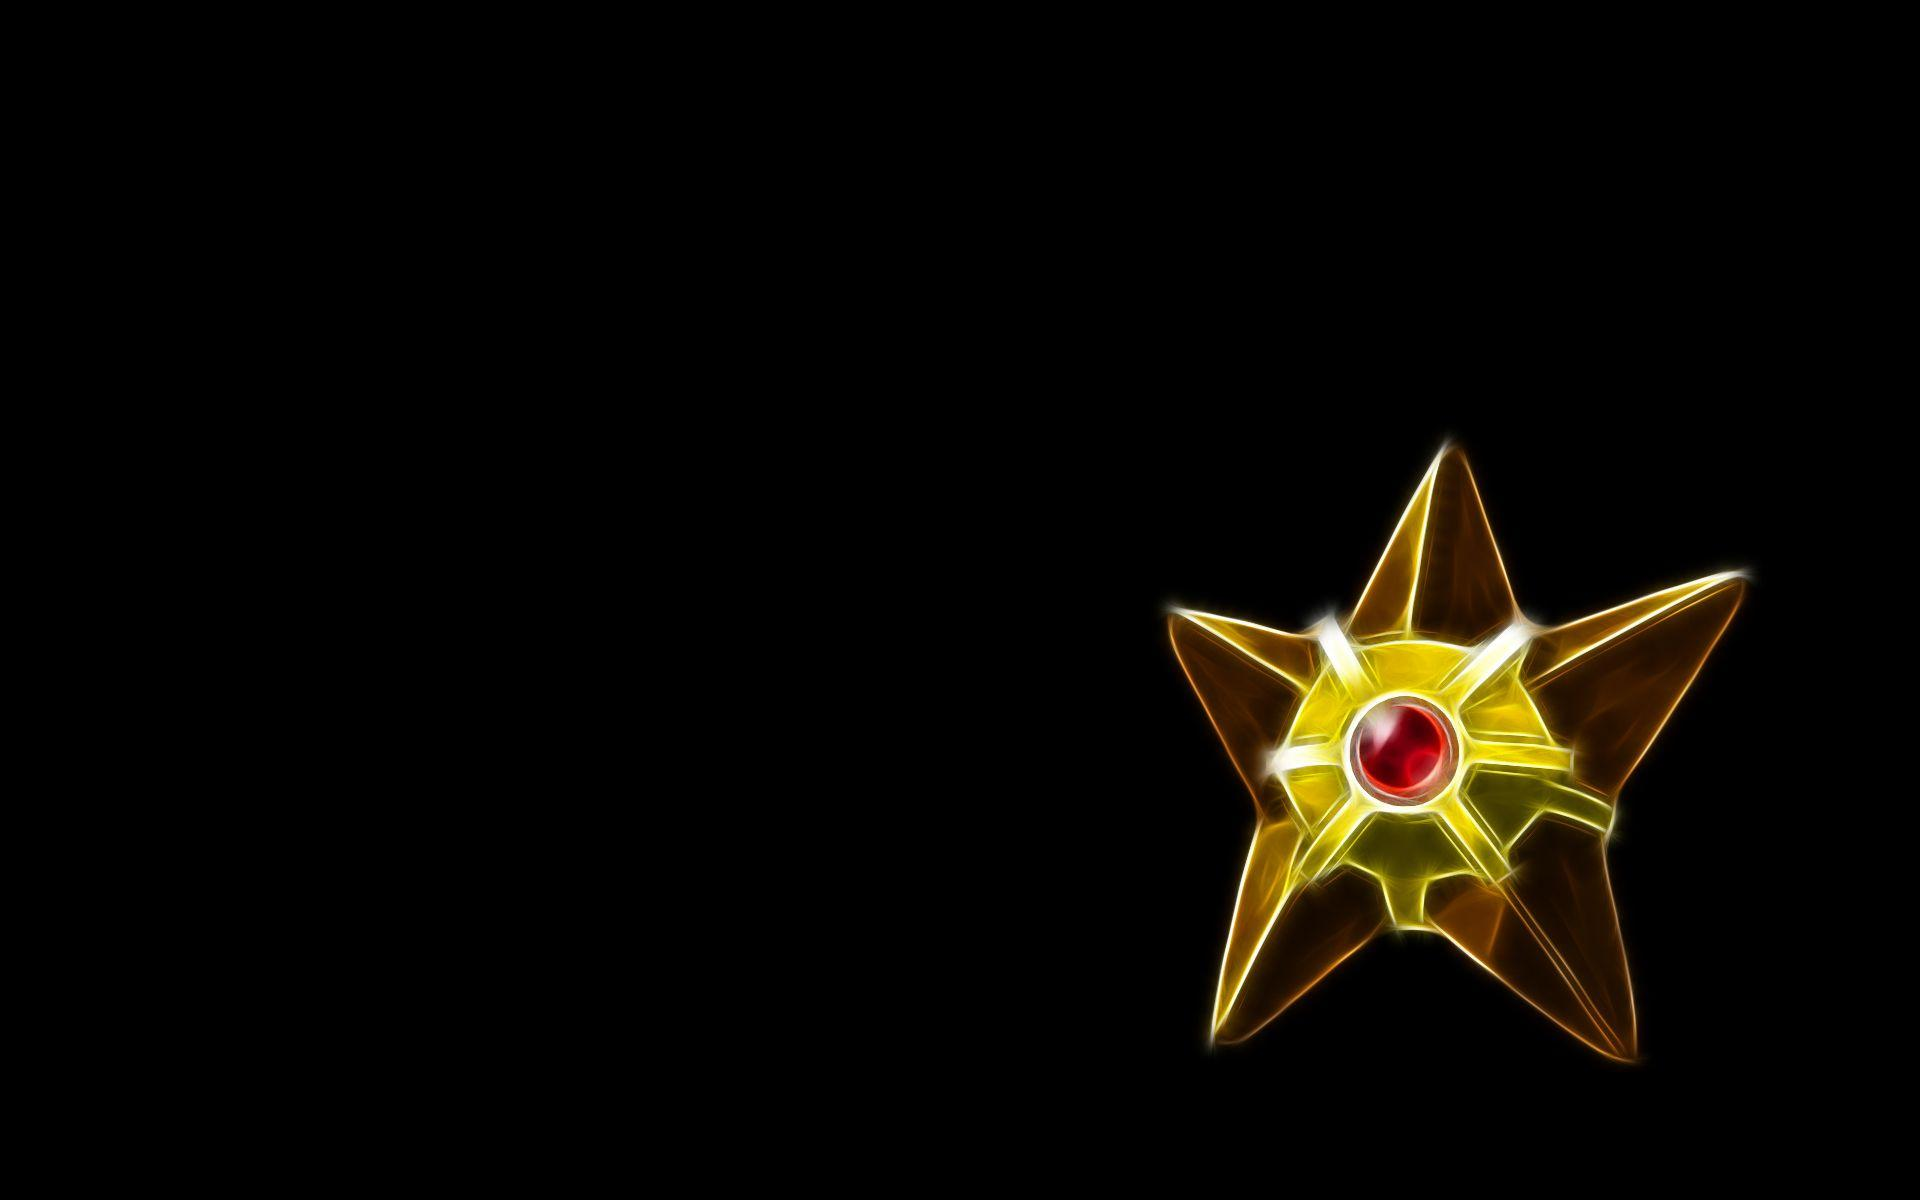 Download the Staryu Wallpaper, Staryu iPhone Wallpaper, Staryu ...